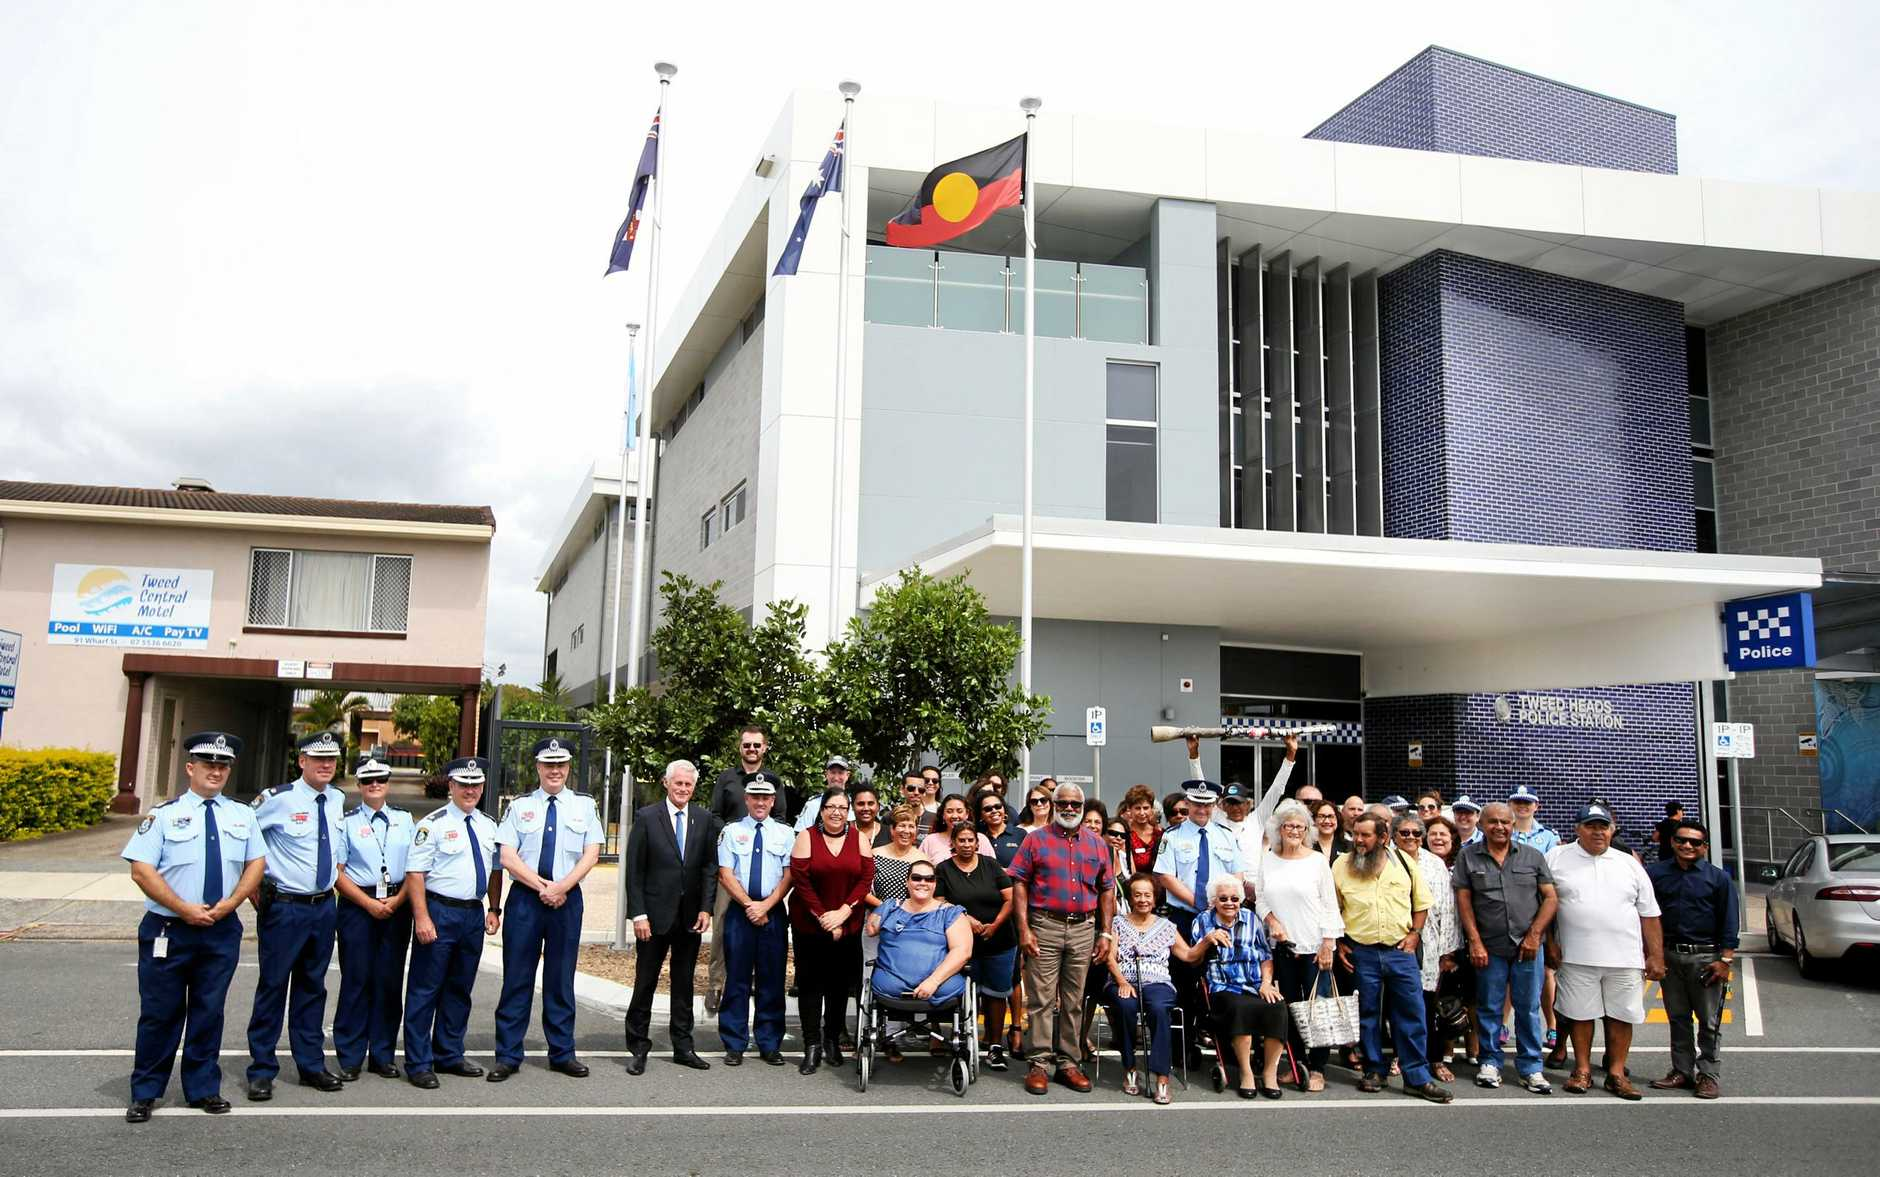 EMBRACING COMMUNITY: The Aboriginal flag was officially raised at the Tweed Heads Police Station on Tuesday.